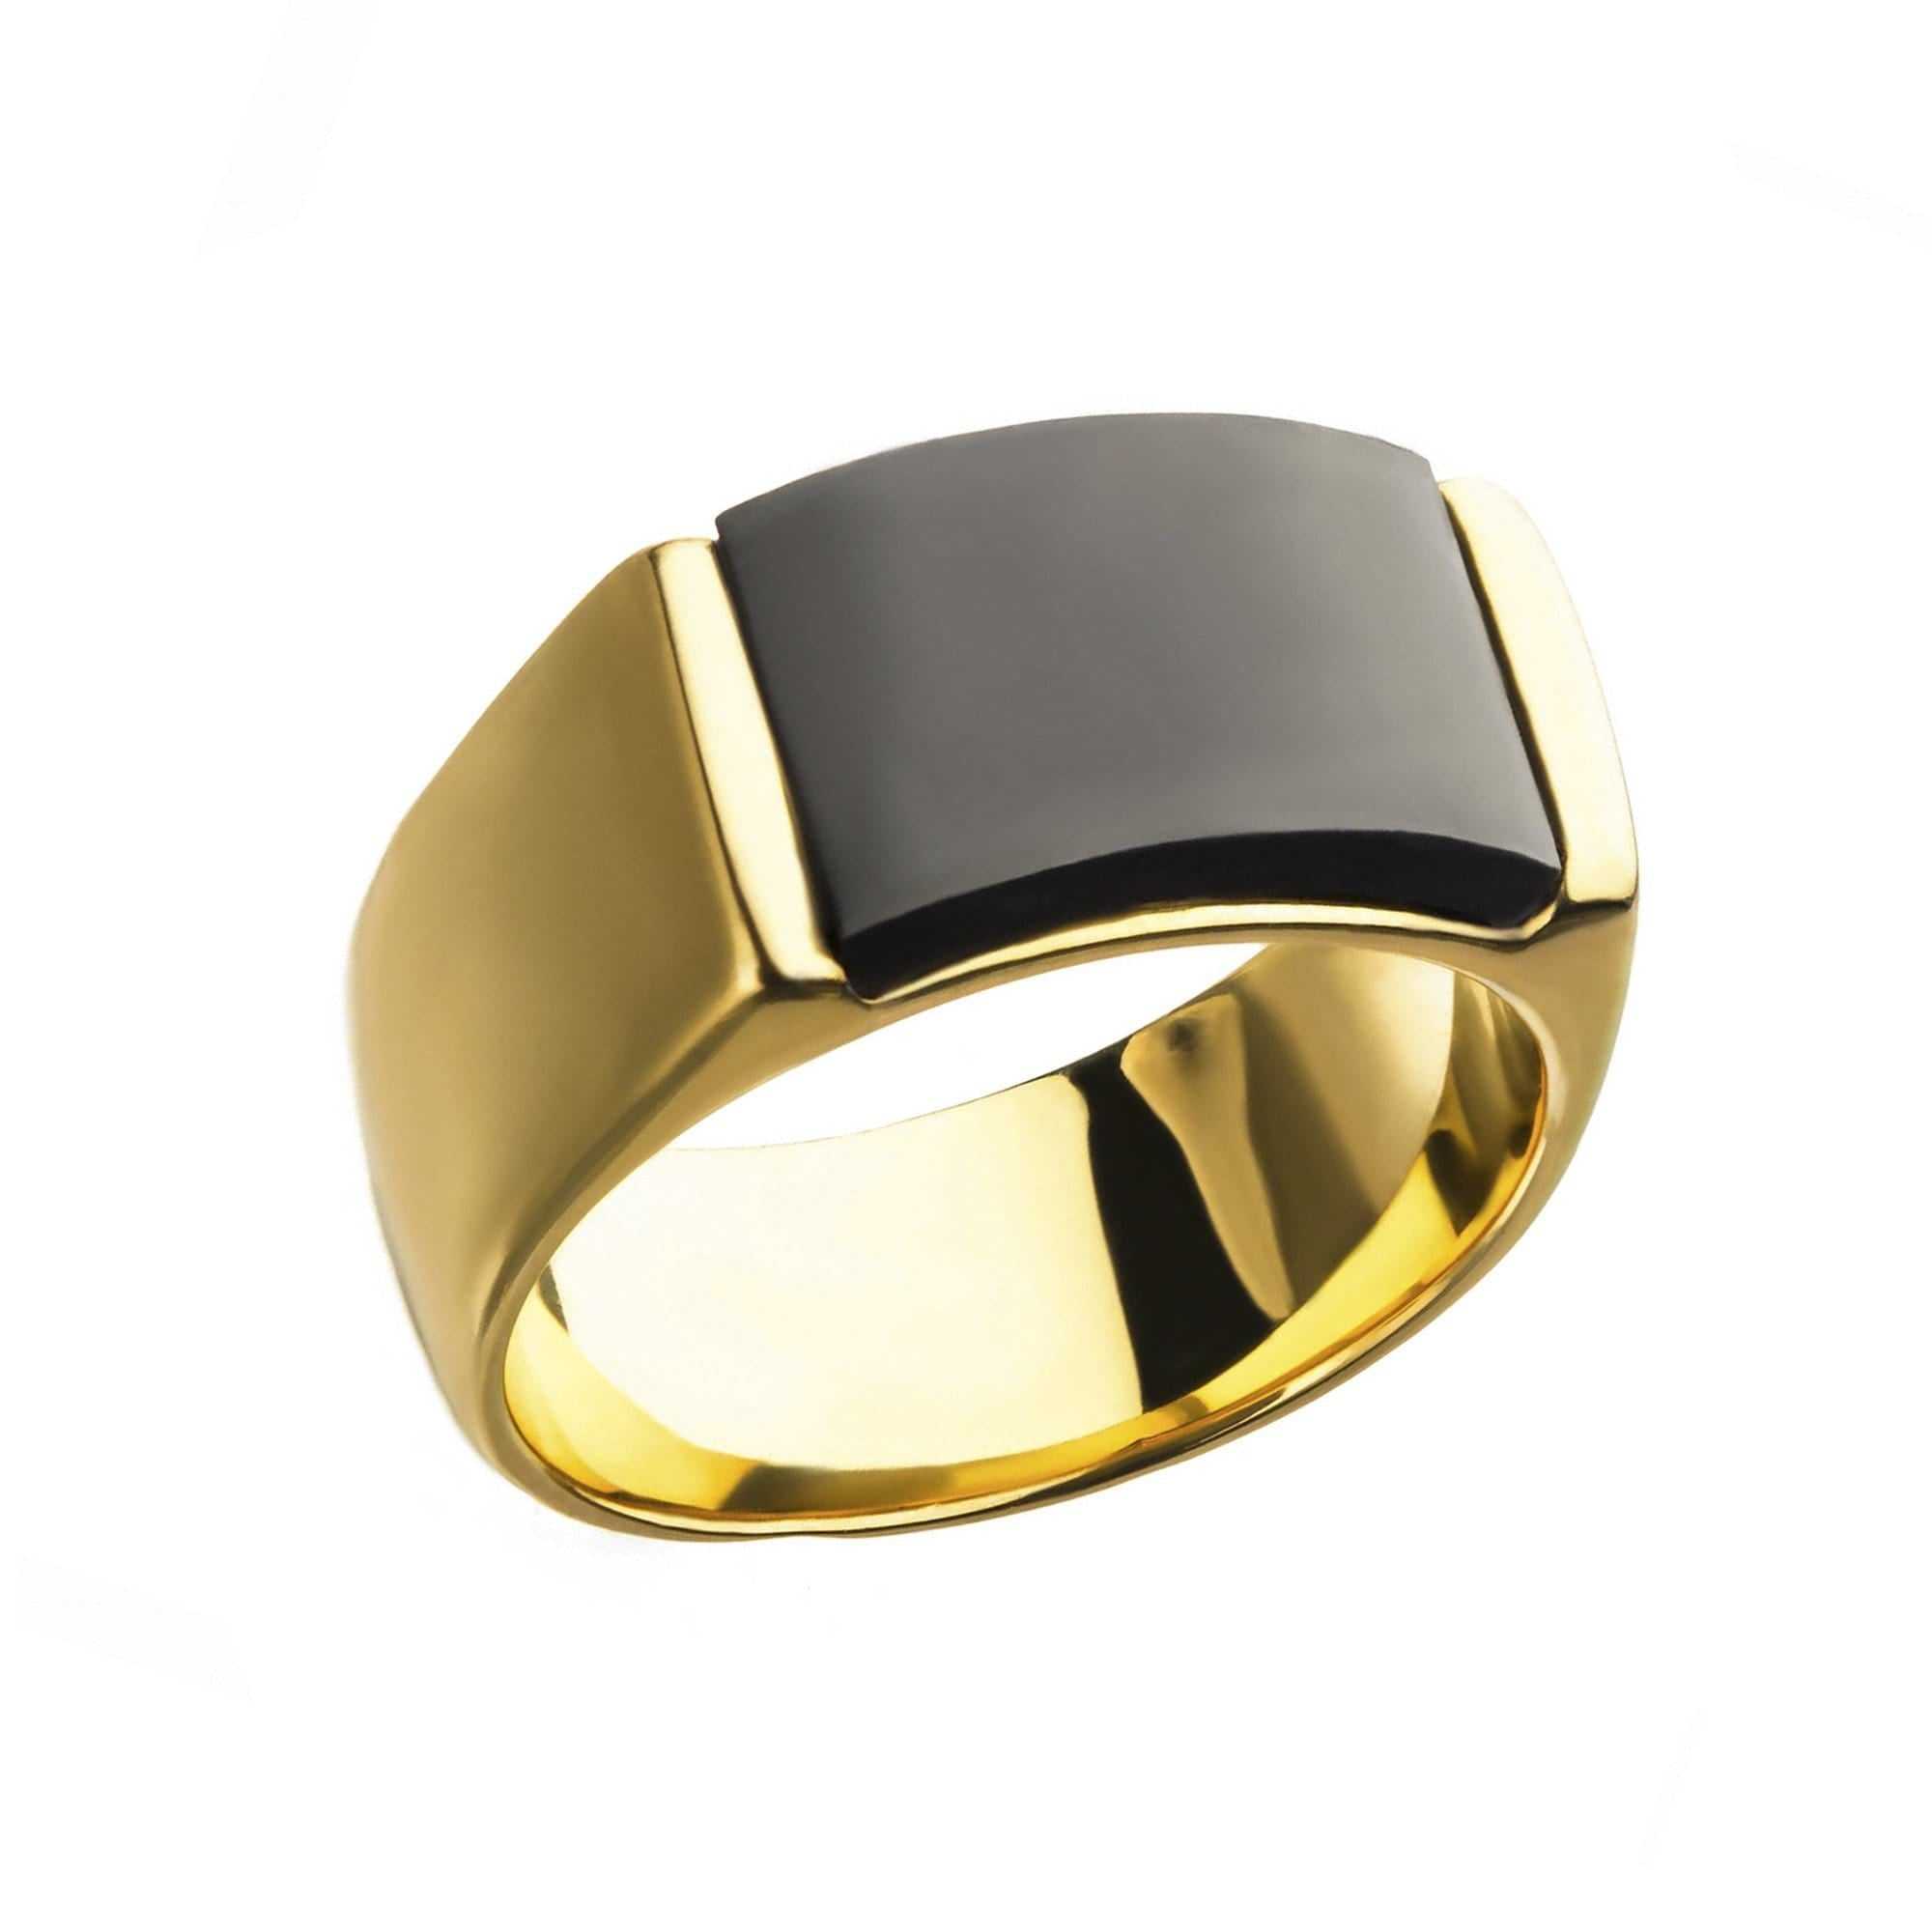 Gold & Black Stainless Steel Matte Finish Engravable Signet Ring